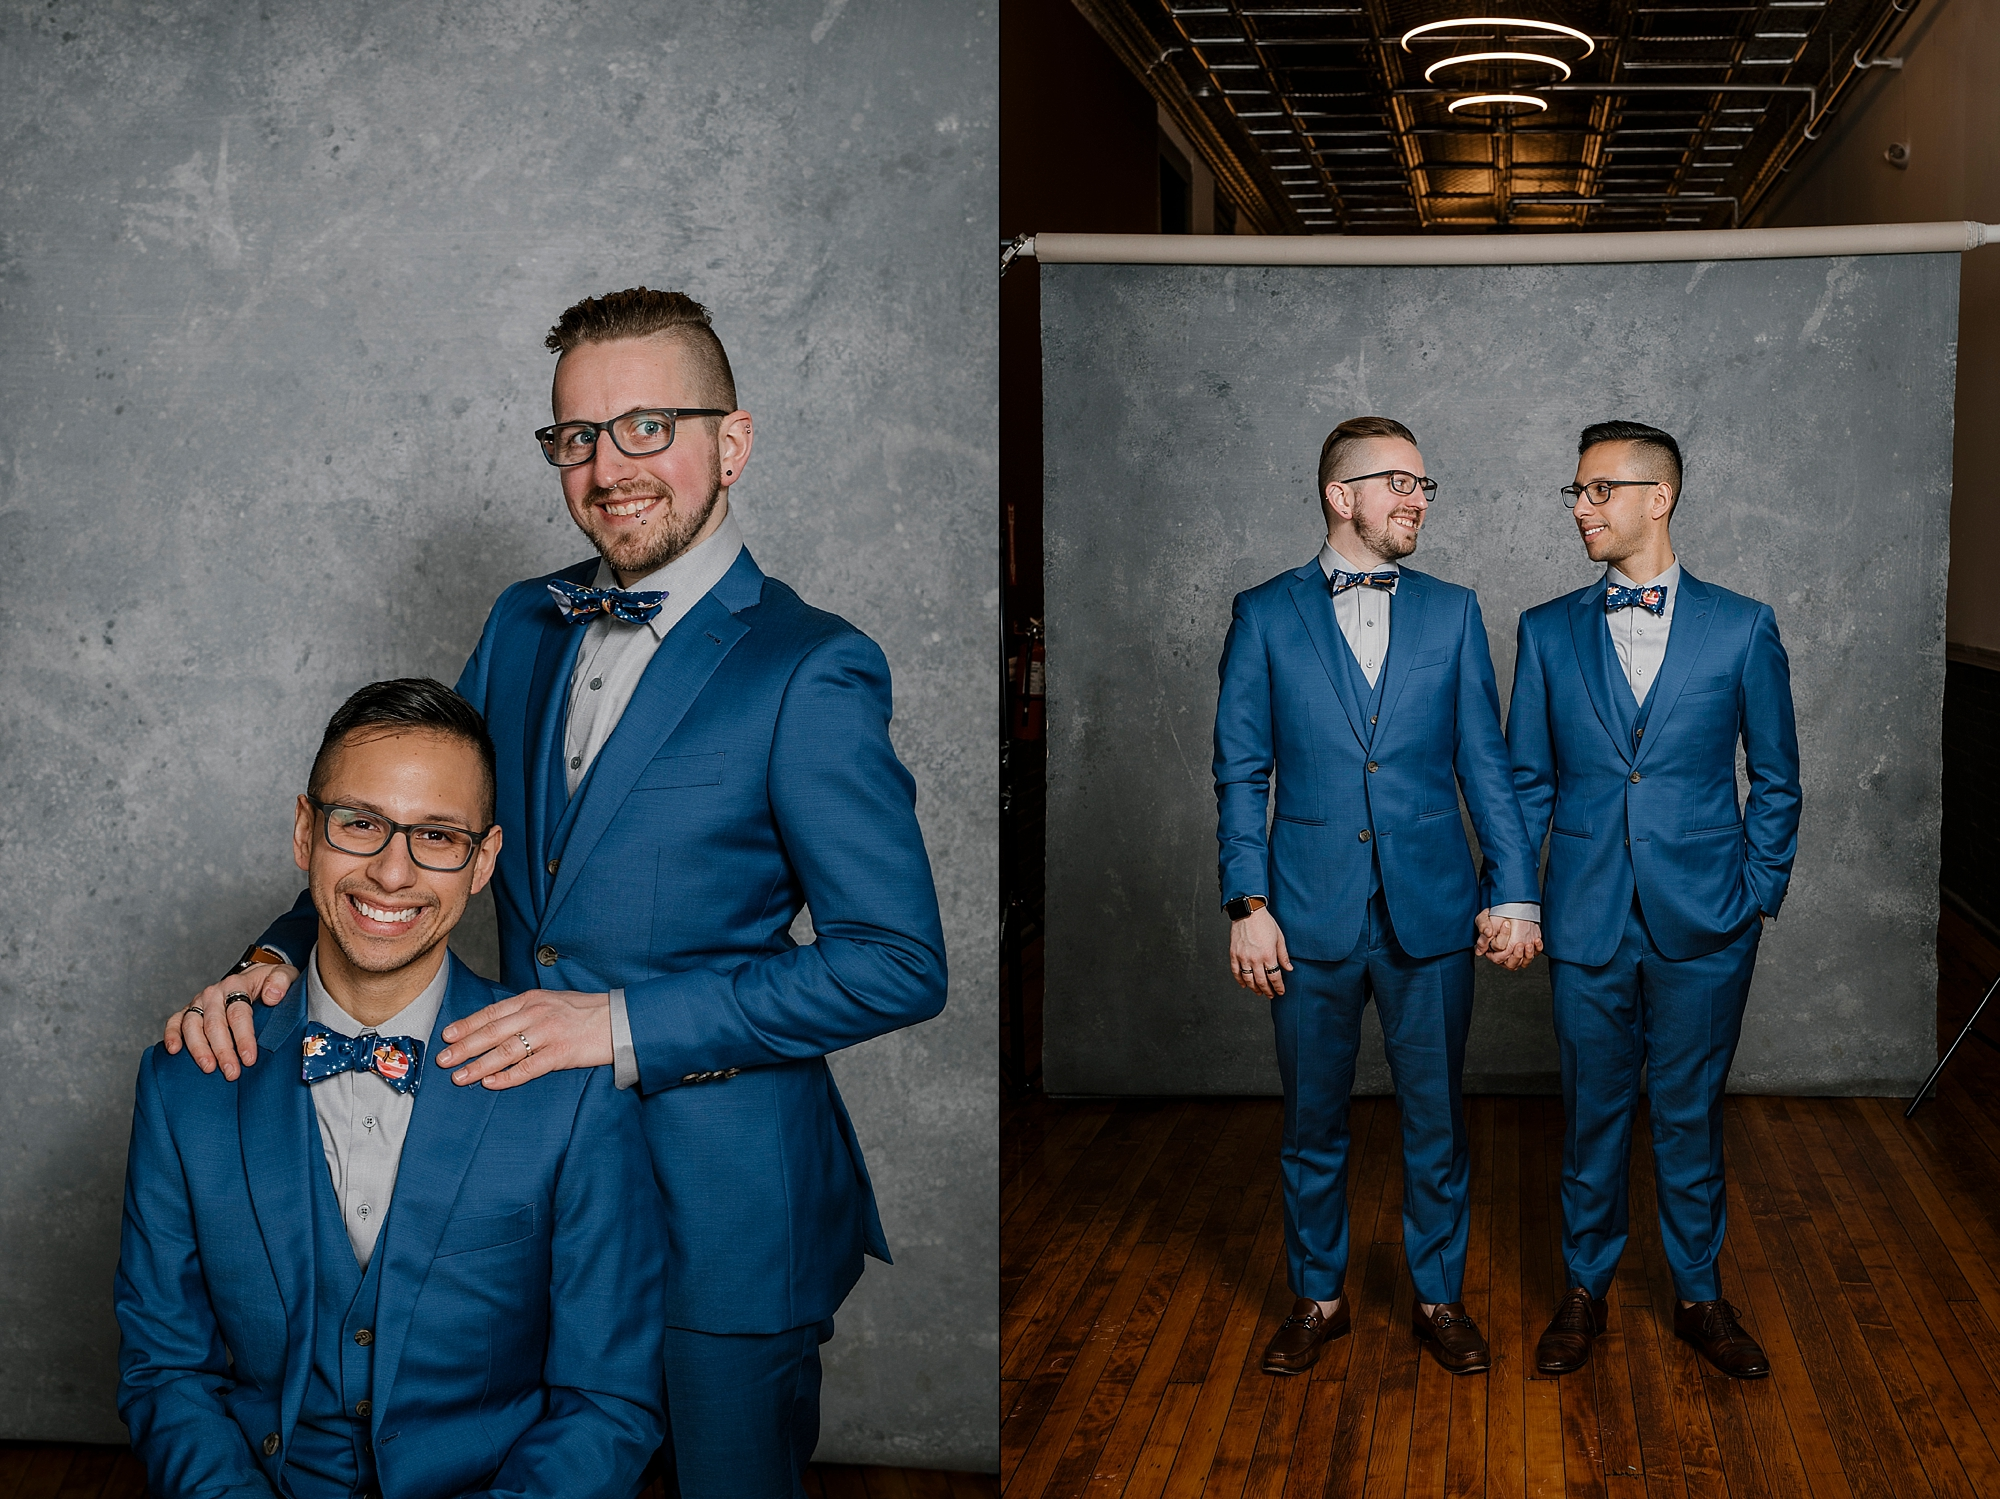 Joe_Mac_Creative_Philadelphia_Philly_LGBT_Gay_Engagement_Wedding_Photography__0094.jpg